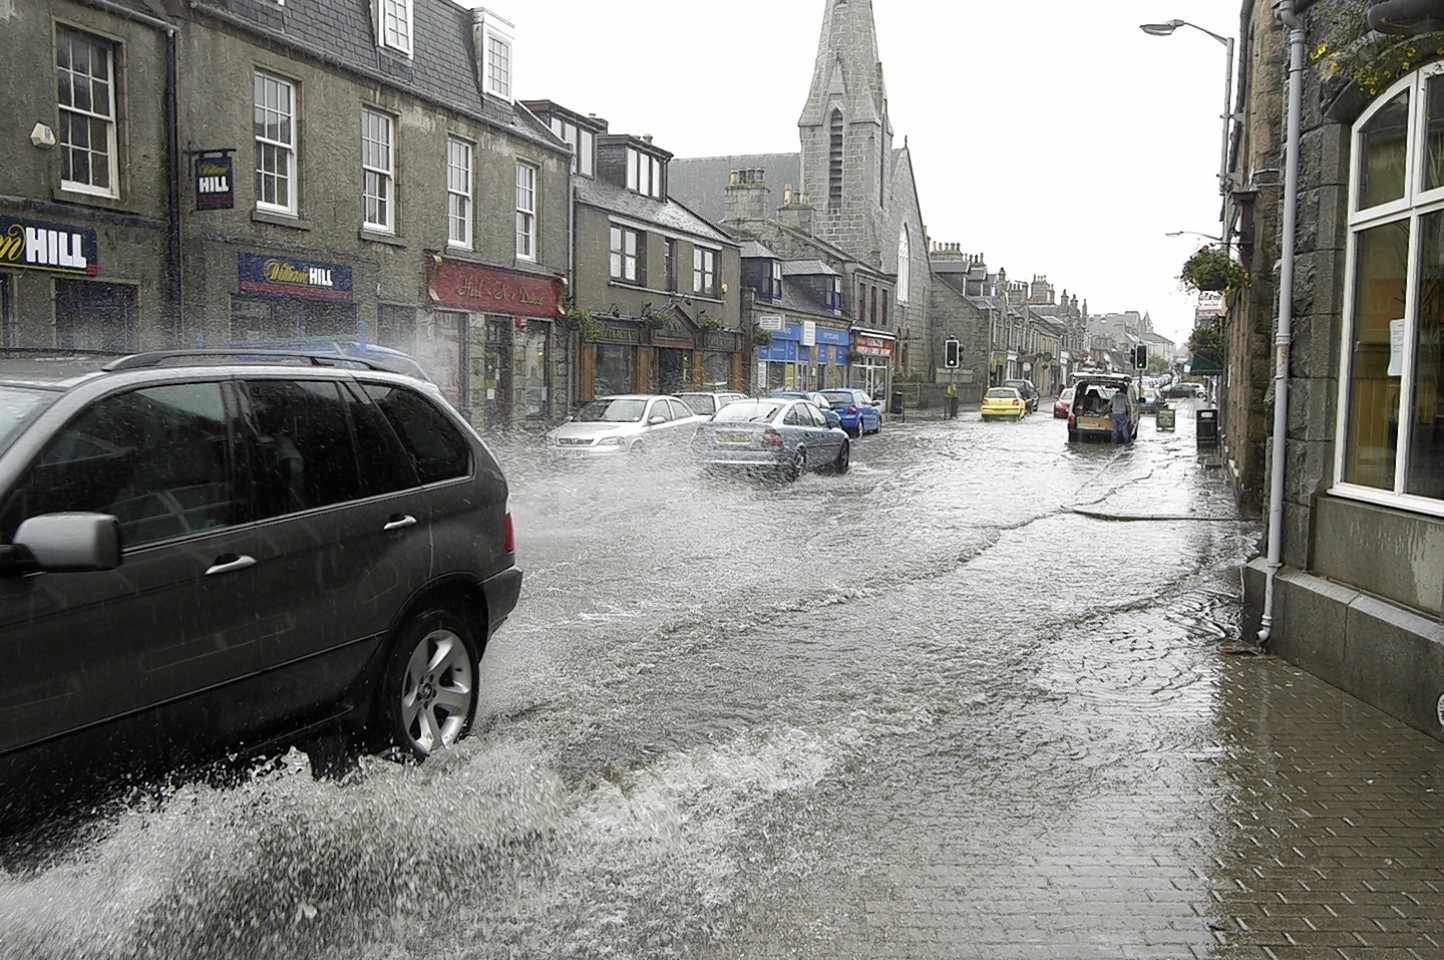 Inverurie has been badly affected by flash floods over the years